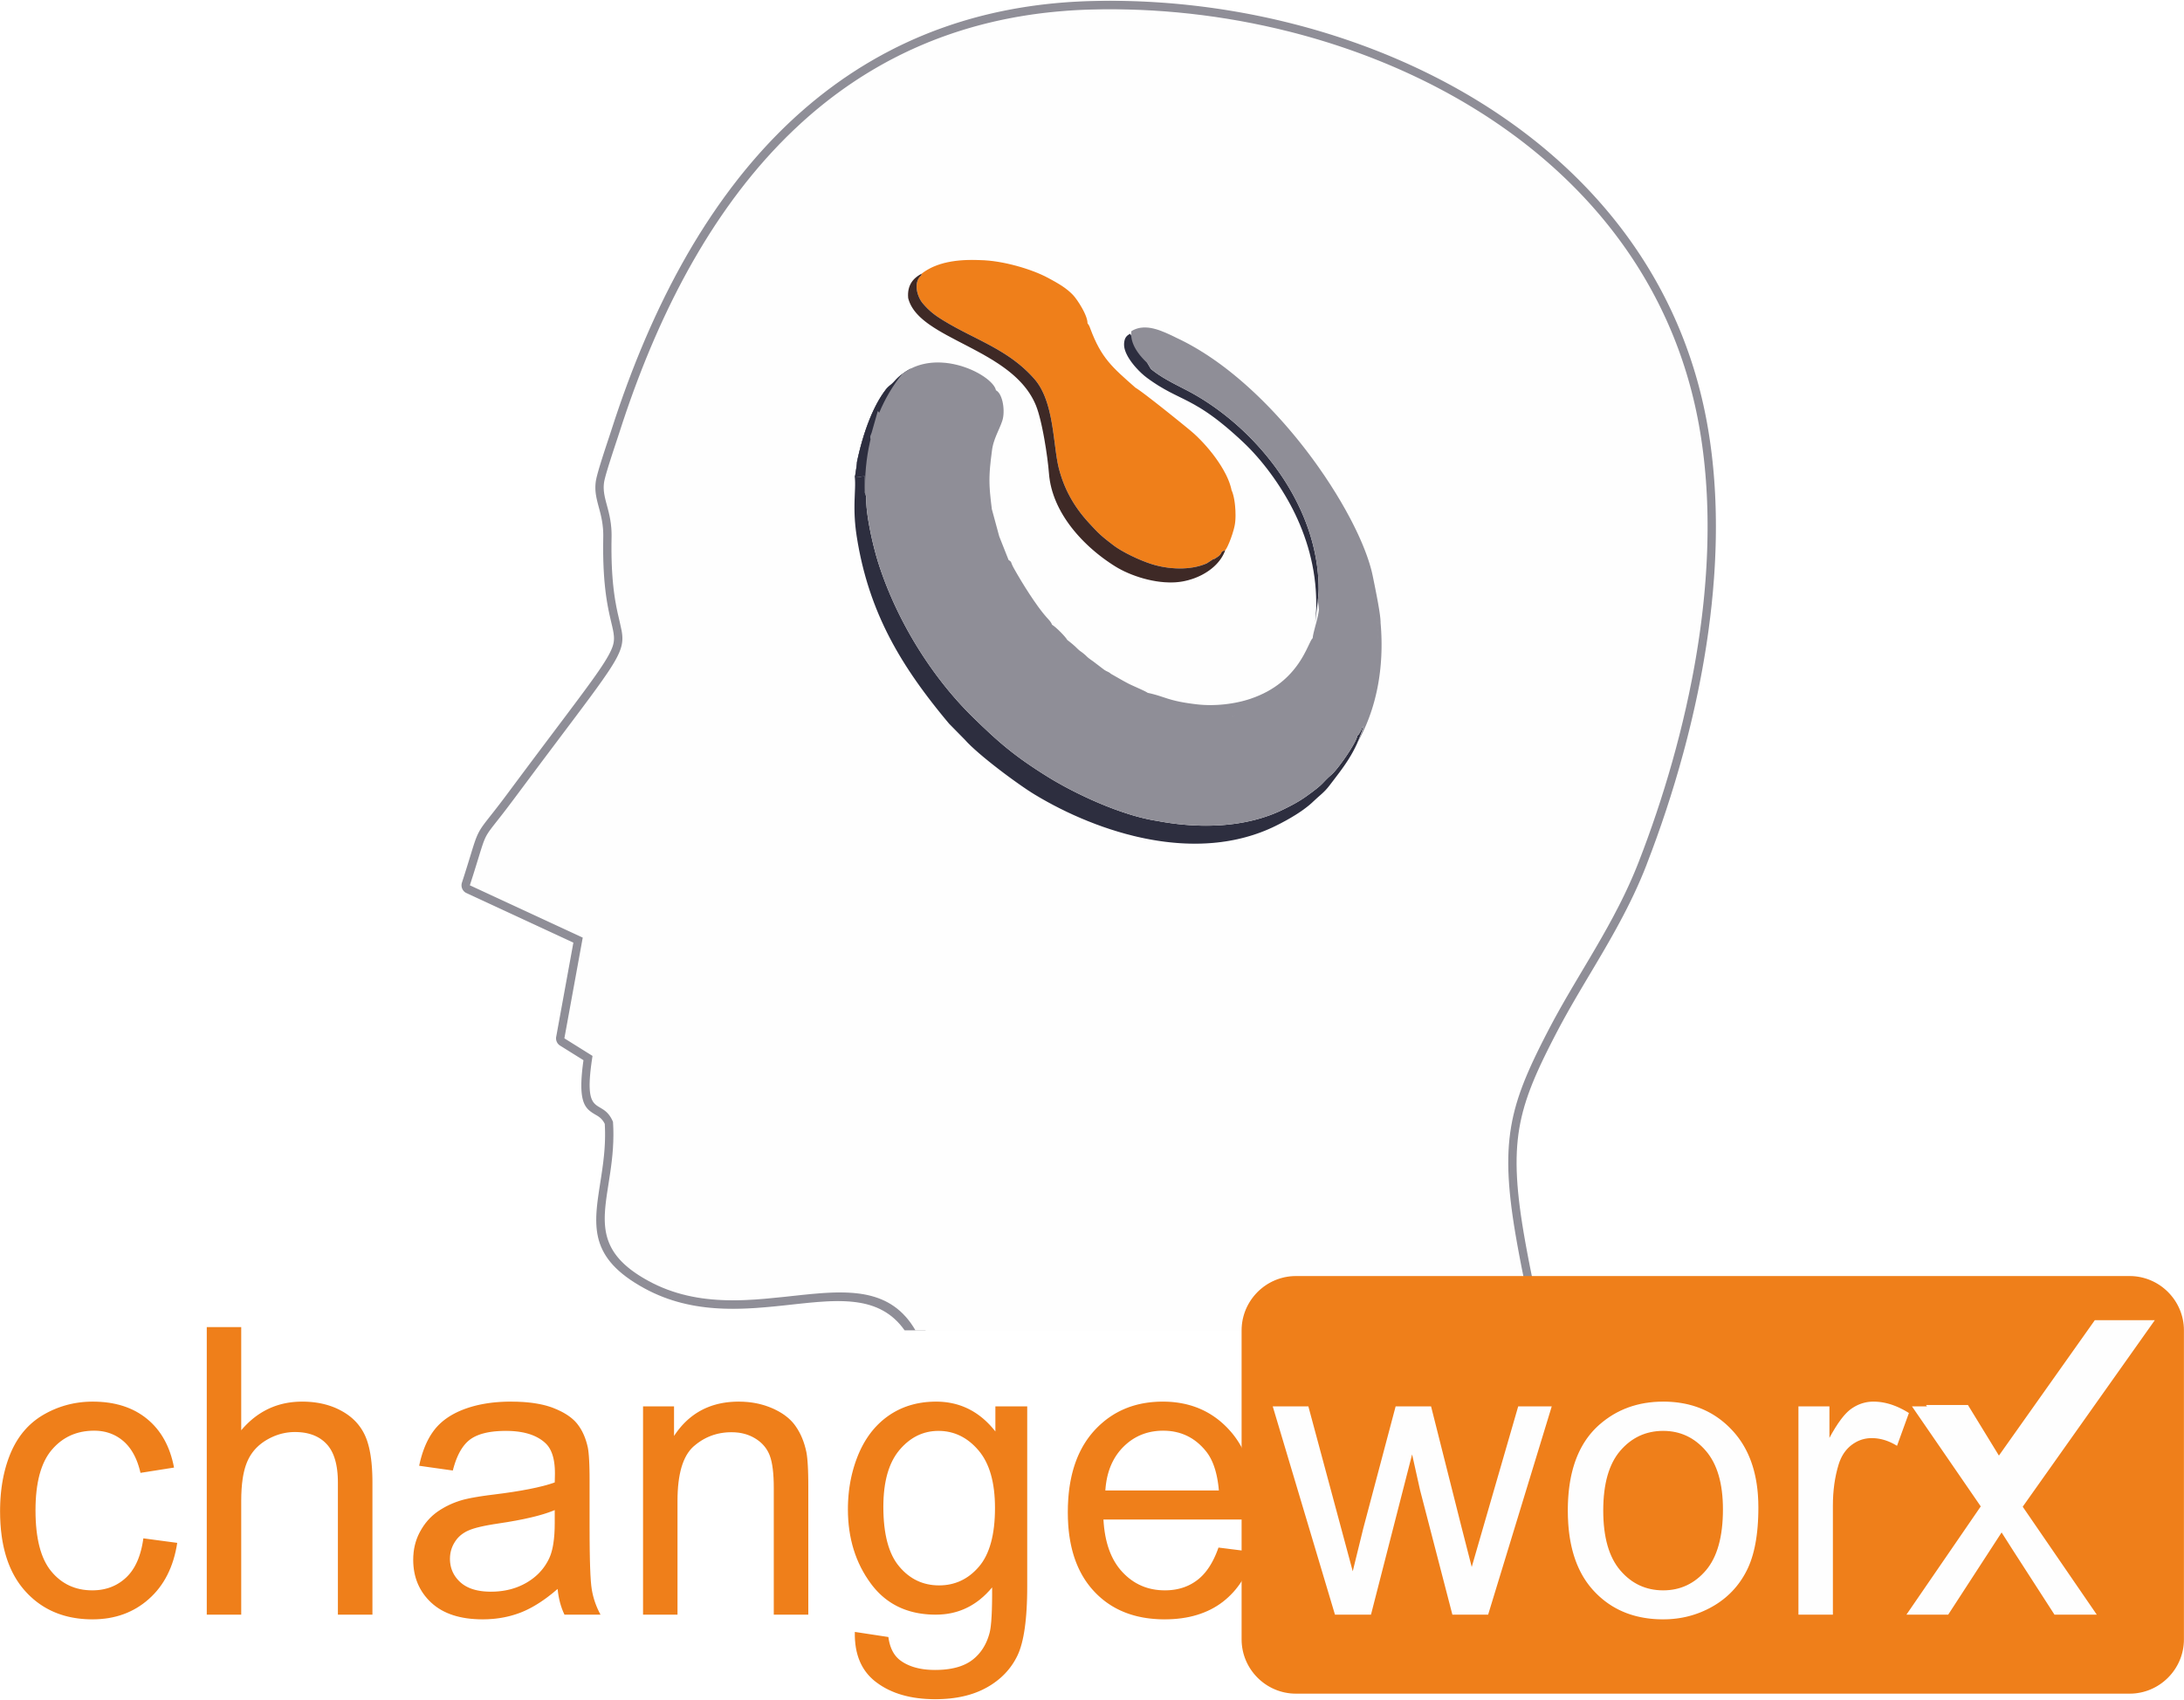 Why Do You Want to Learn NLP? - ChangeWorx